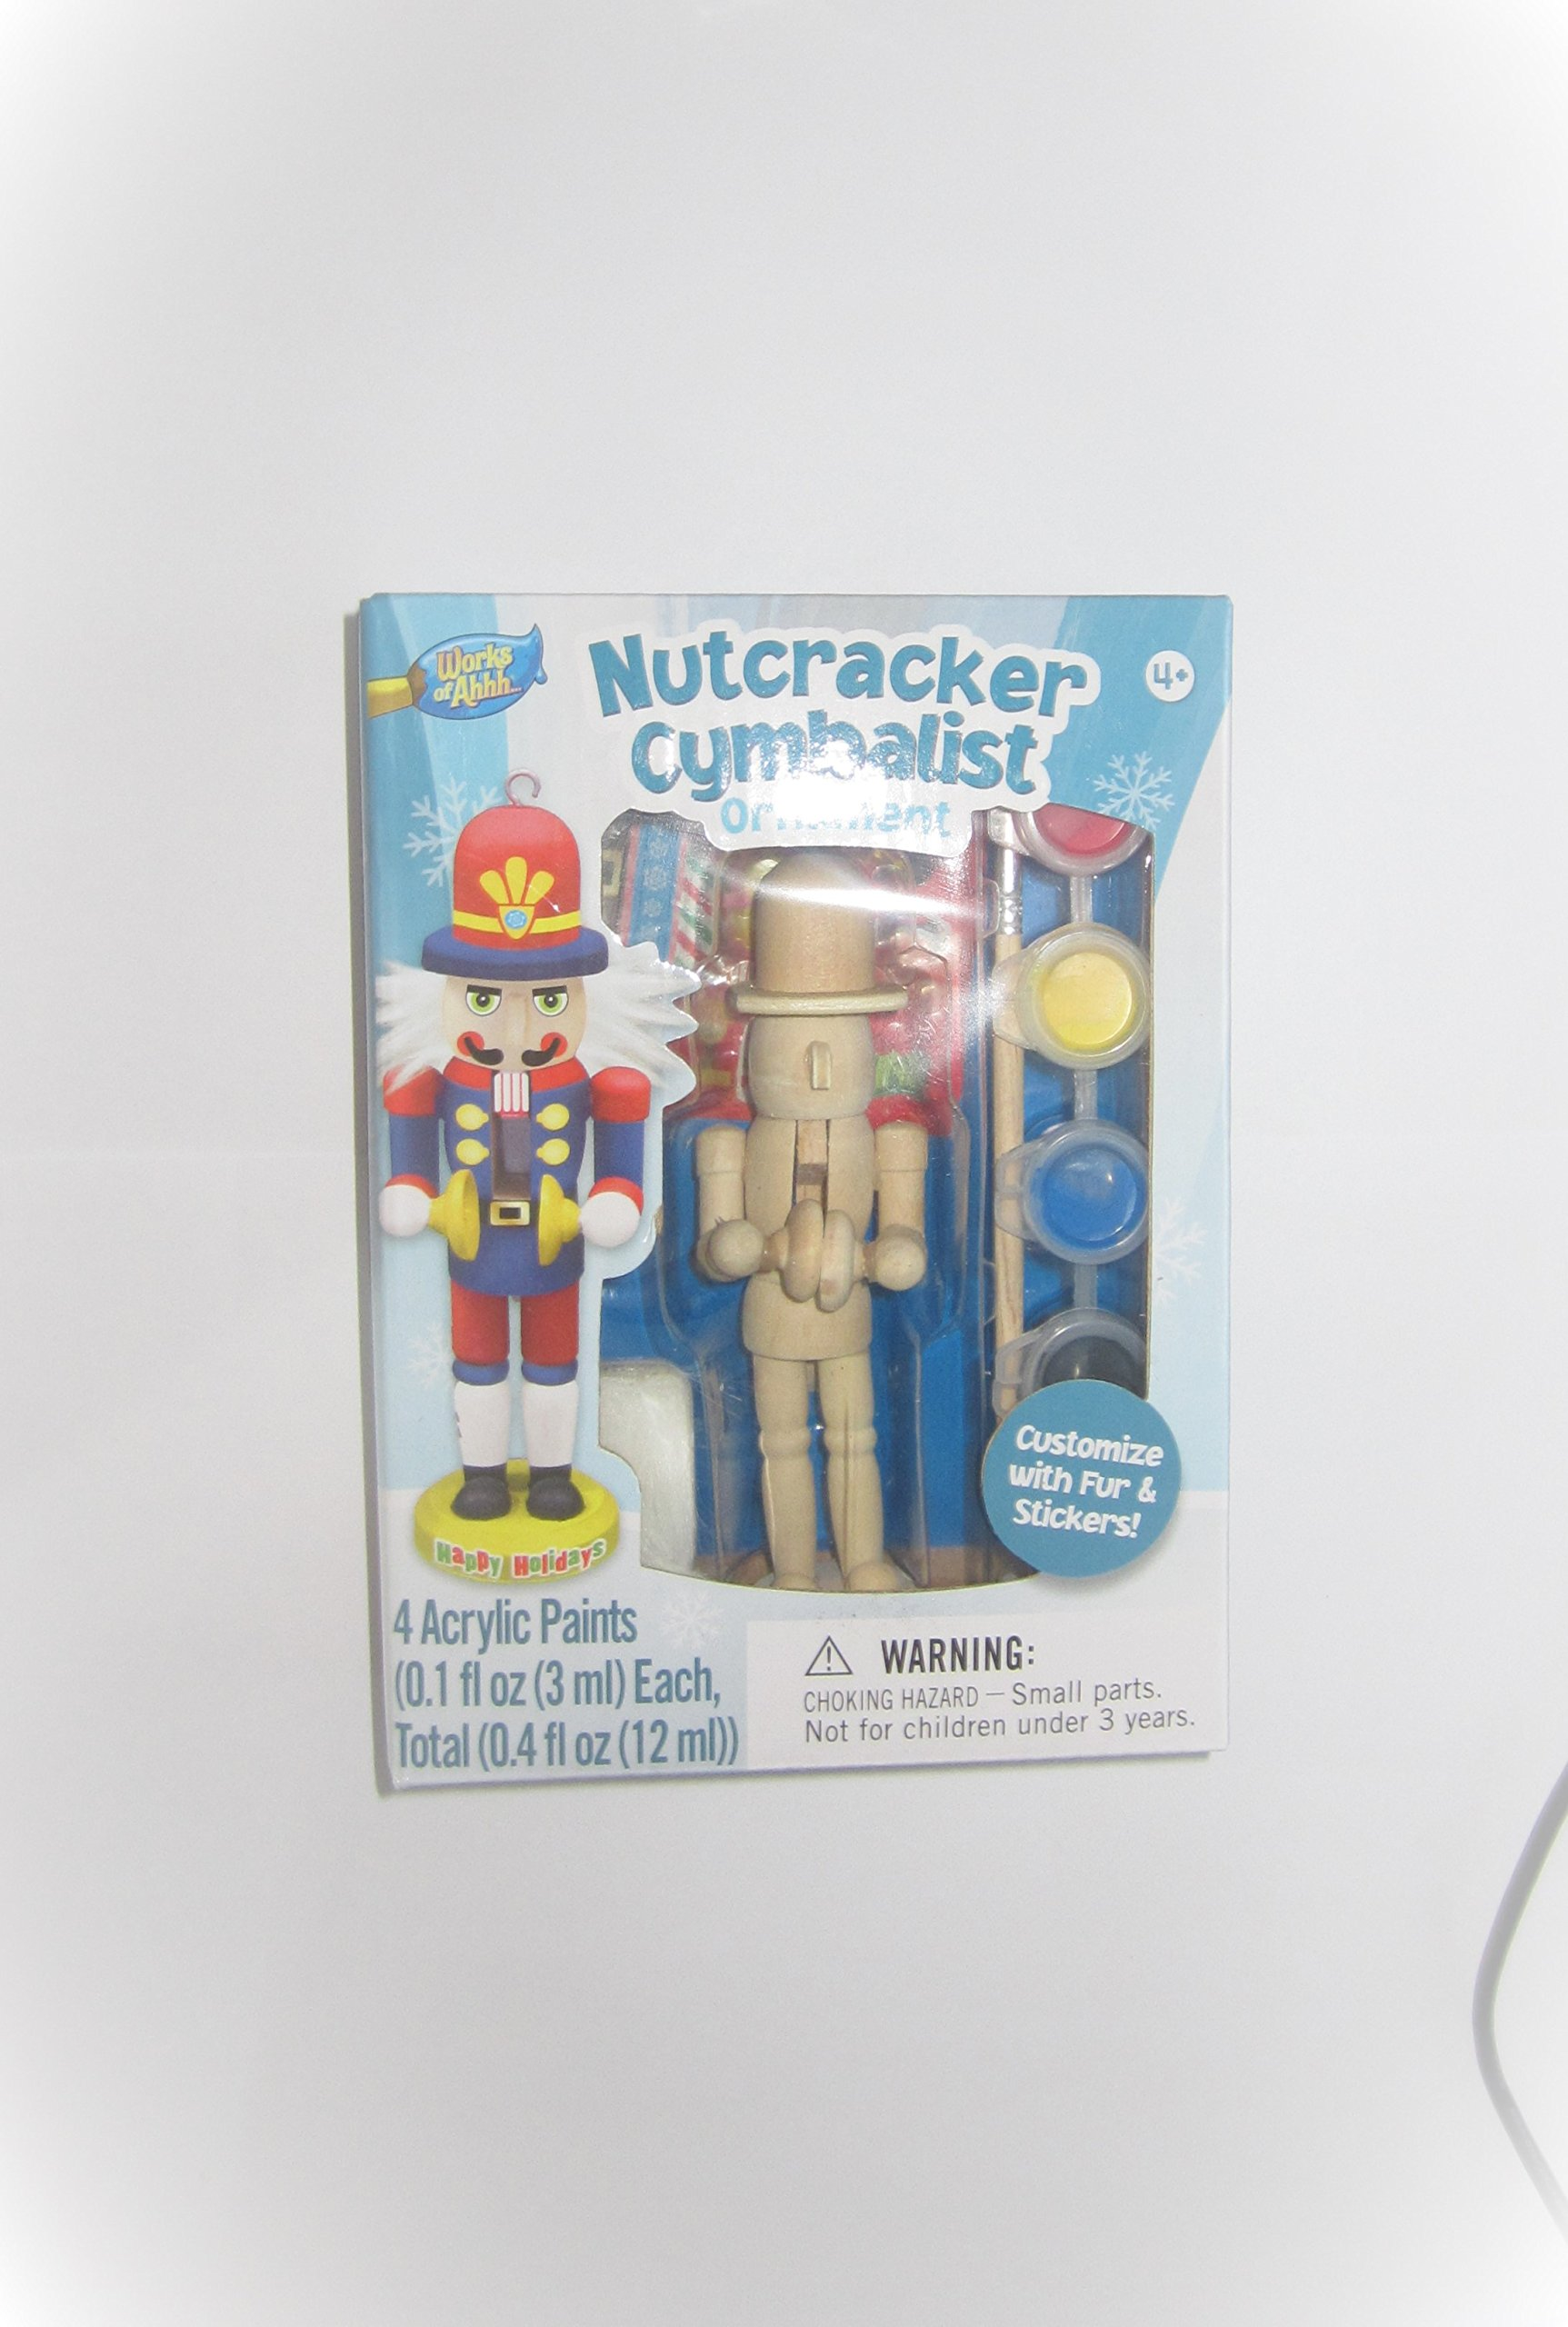 Masterpieces Works of Ahhh Nutcracker Cymbalist Ornament Paint Kit